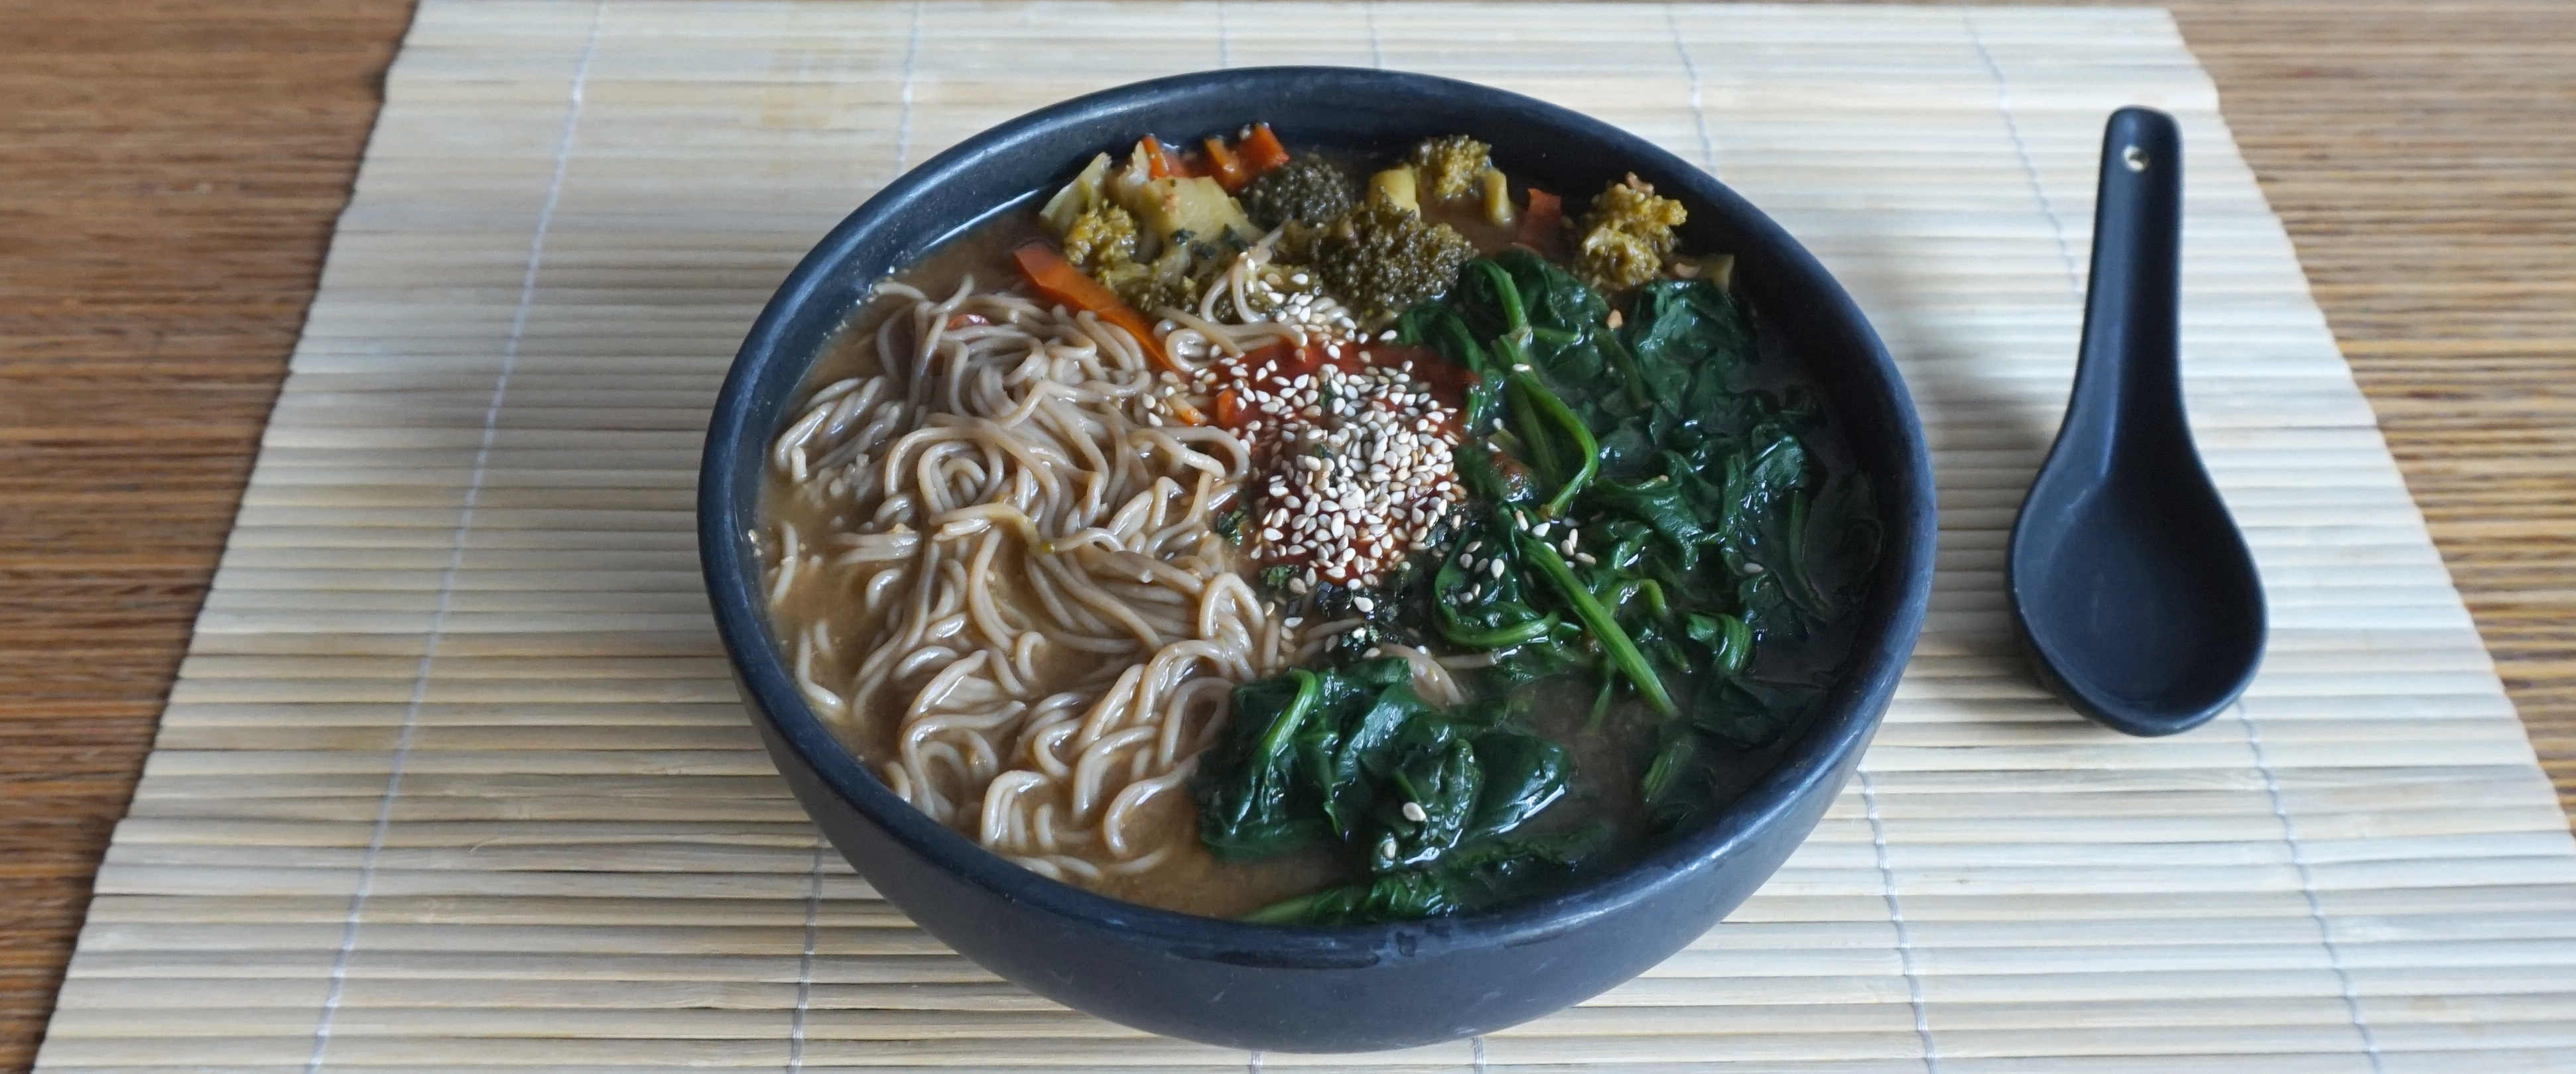 Chili Ginger Miso Ramen